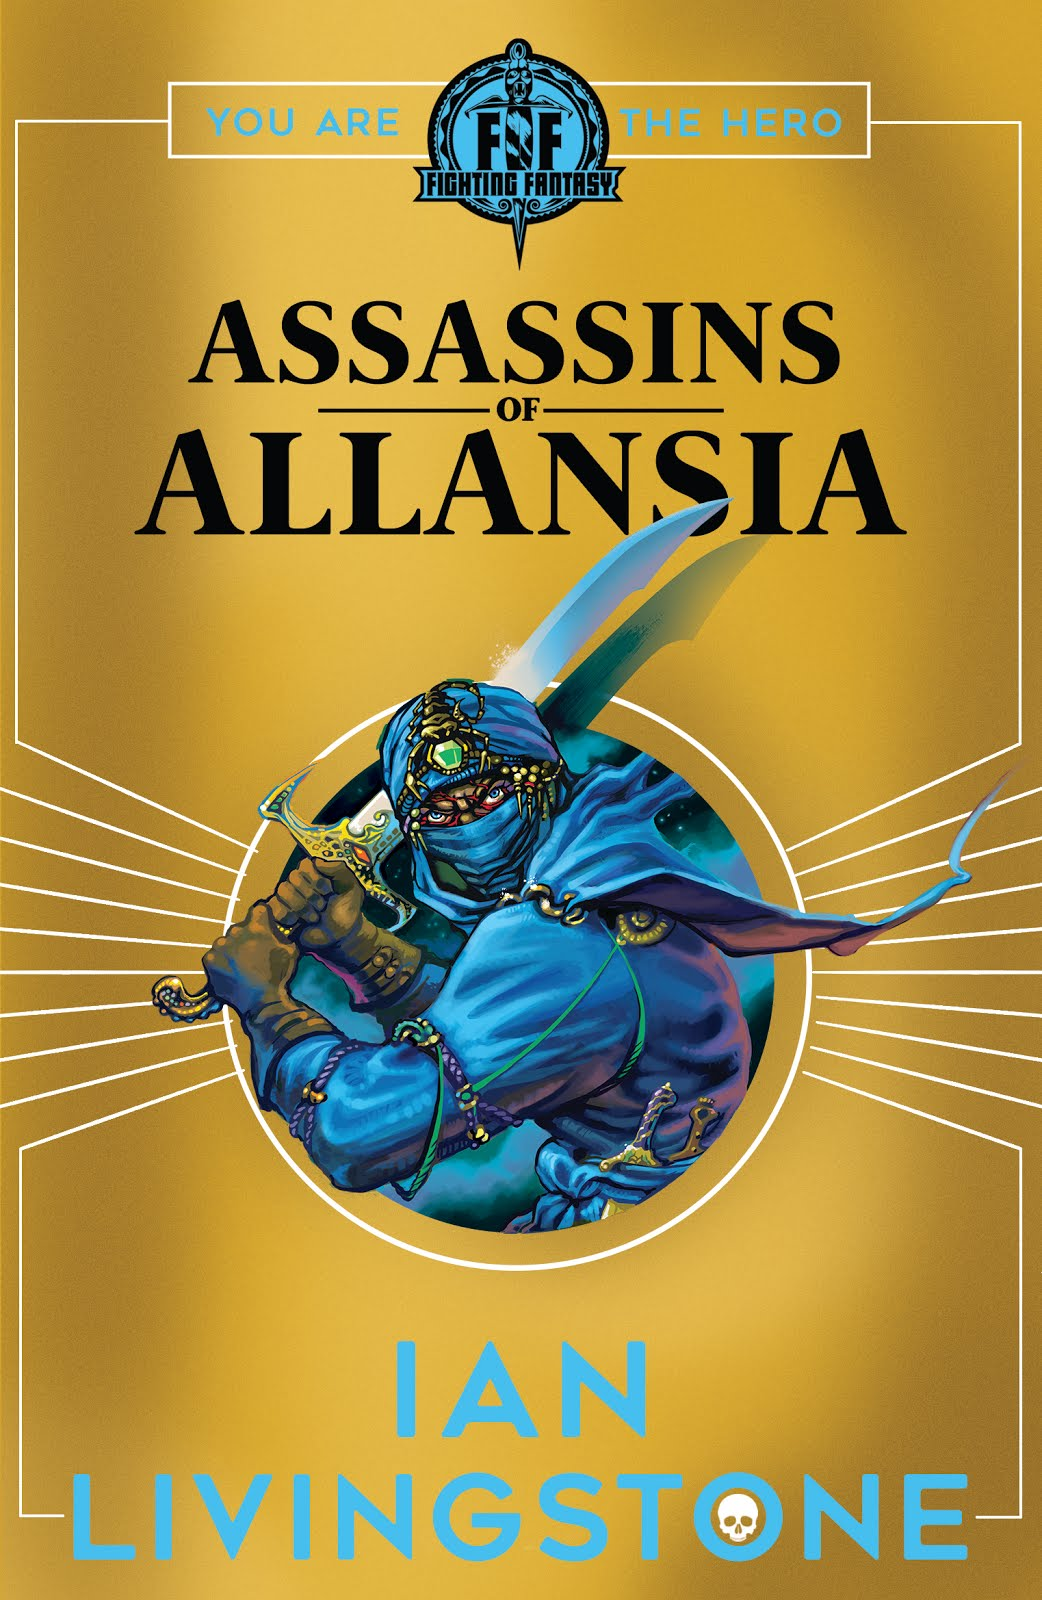 Assassins of Allansia